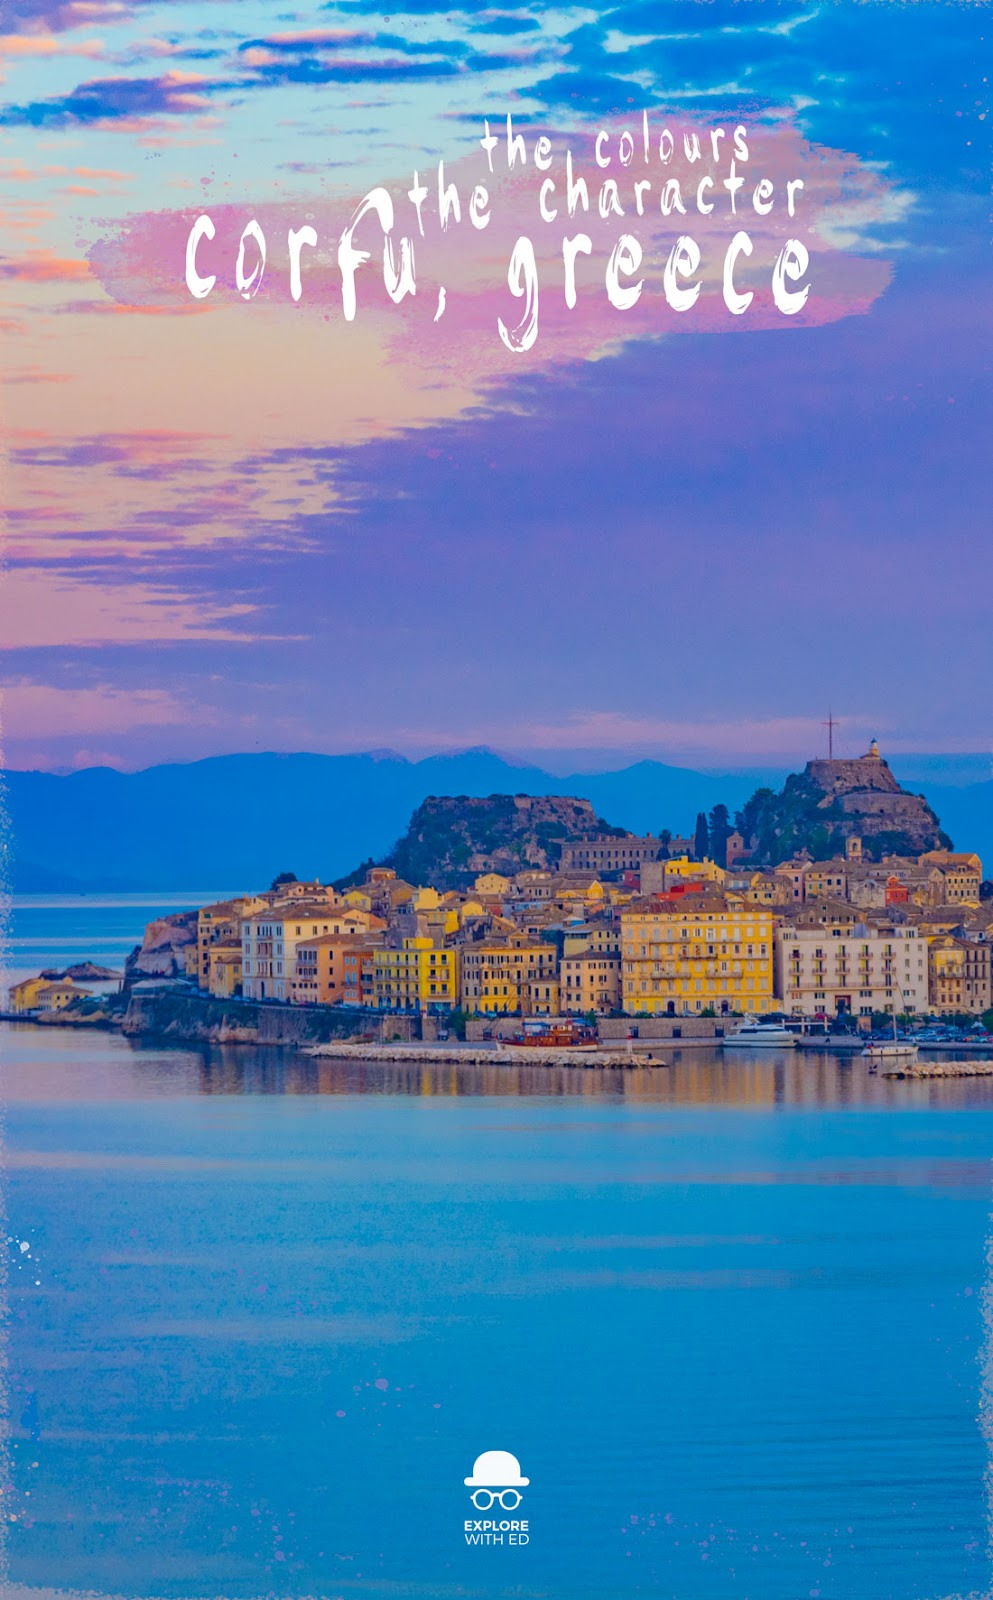 A travel photo series of #corfu, a beautiful Greek Island town bursting with color and character. #traveltips #europe